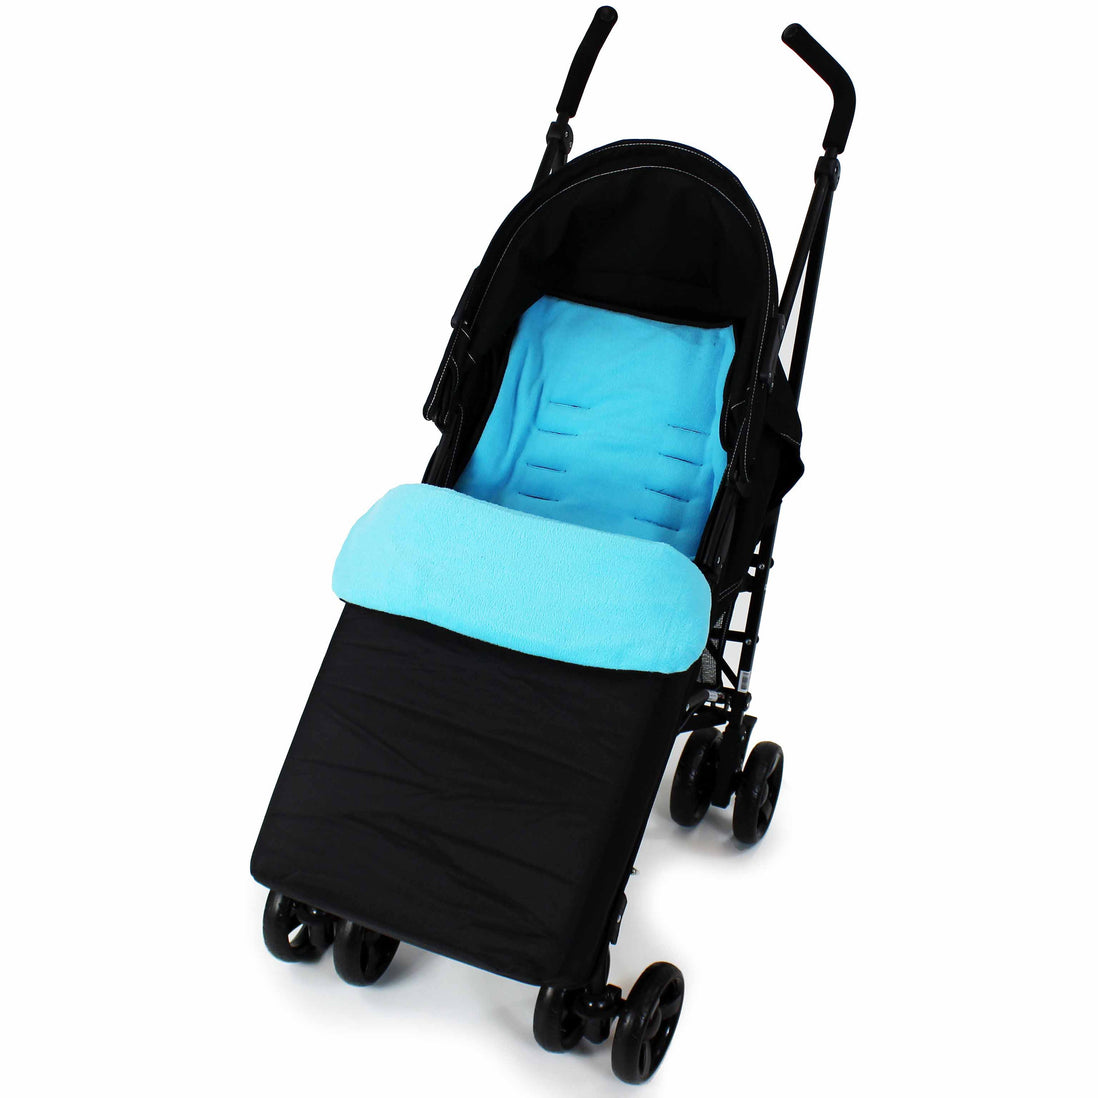 Footmuff//Cosy Toes Compatible with Graco Evo Pushchair Ocean Blue